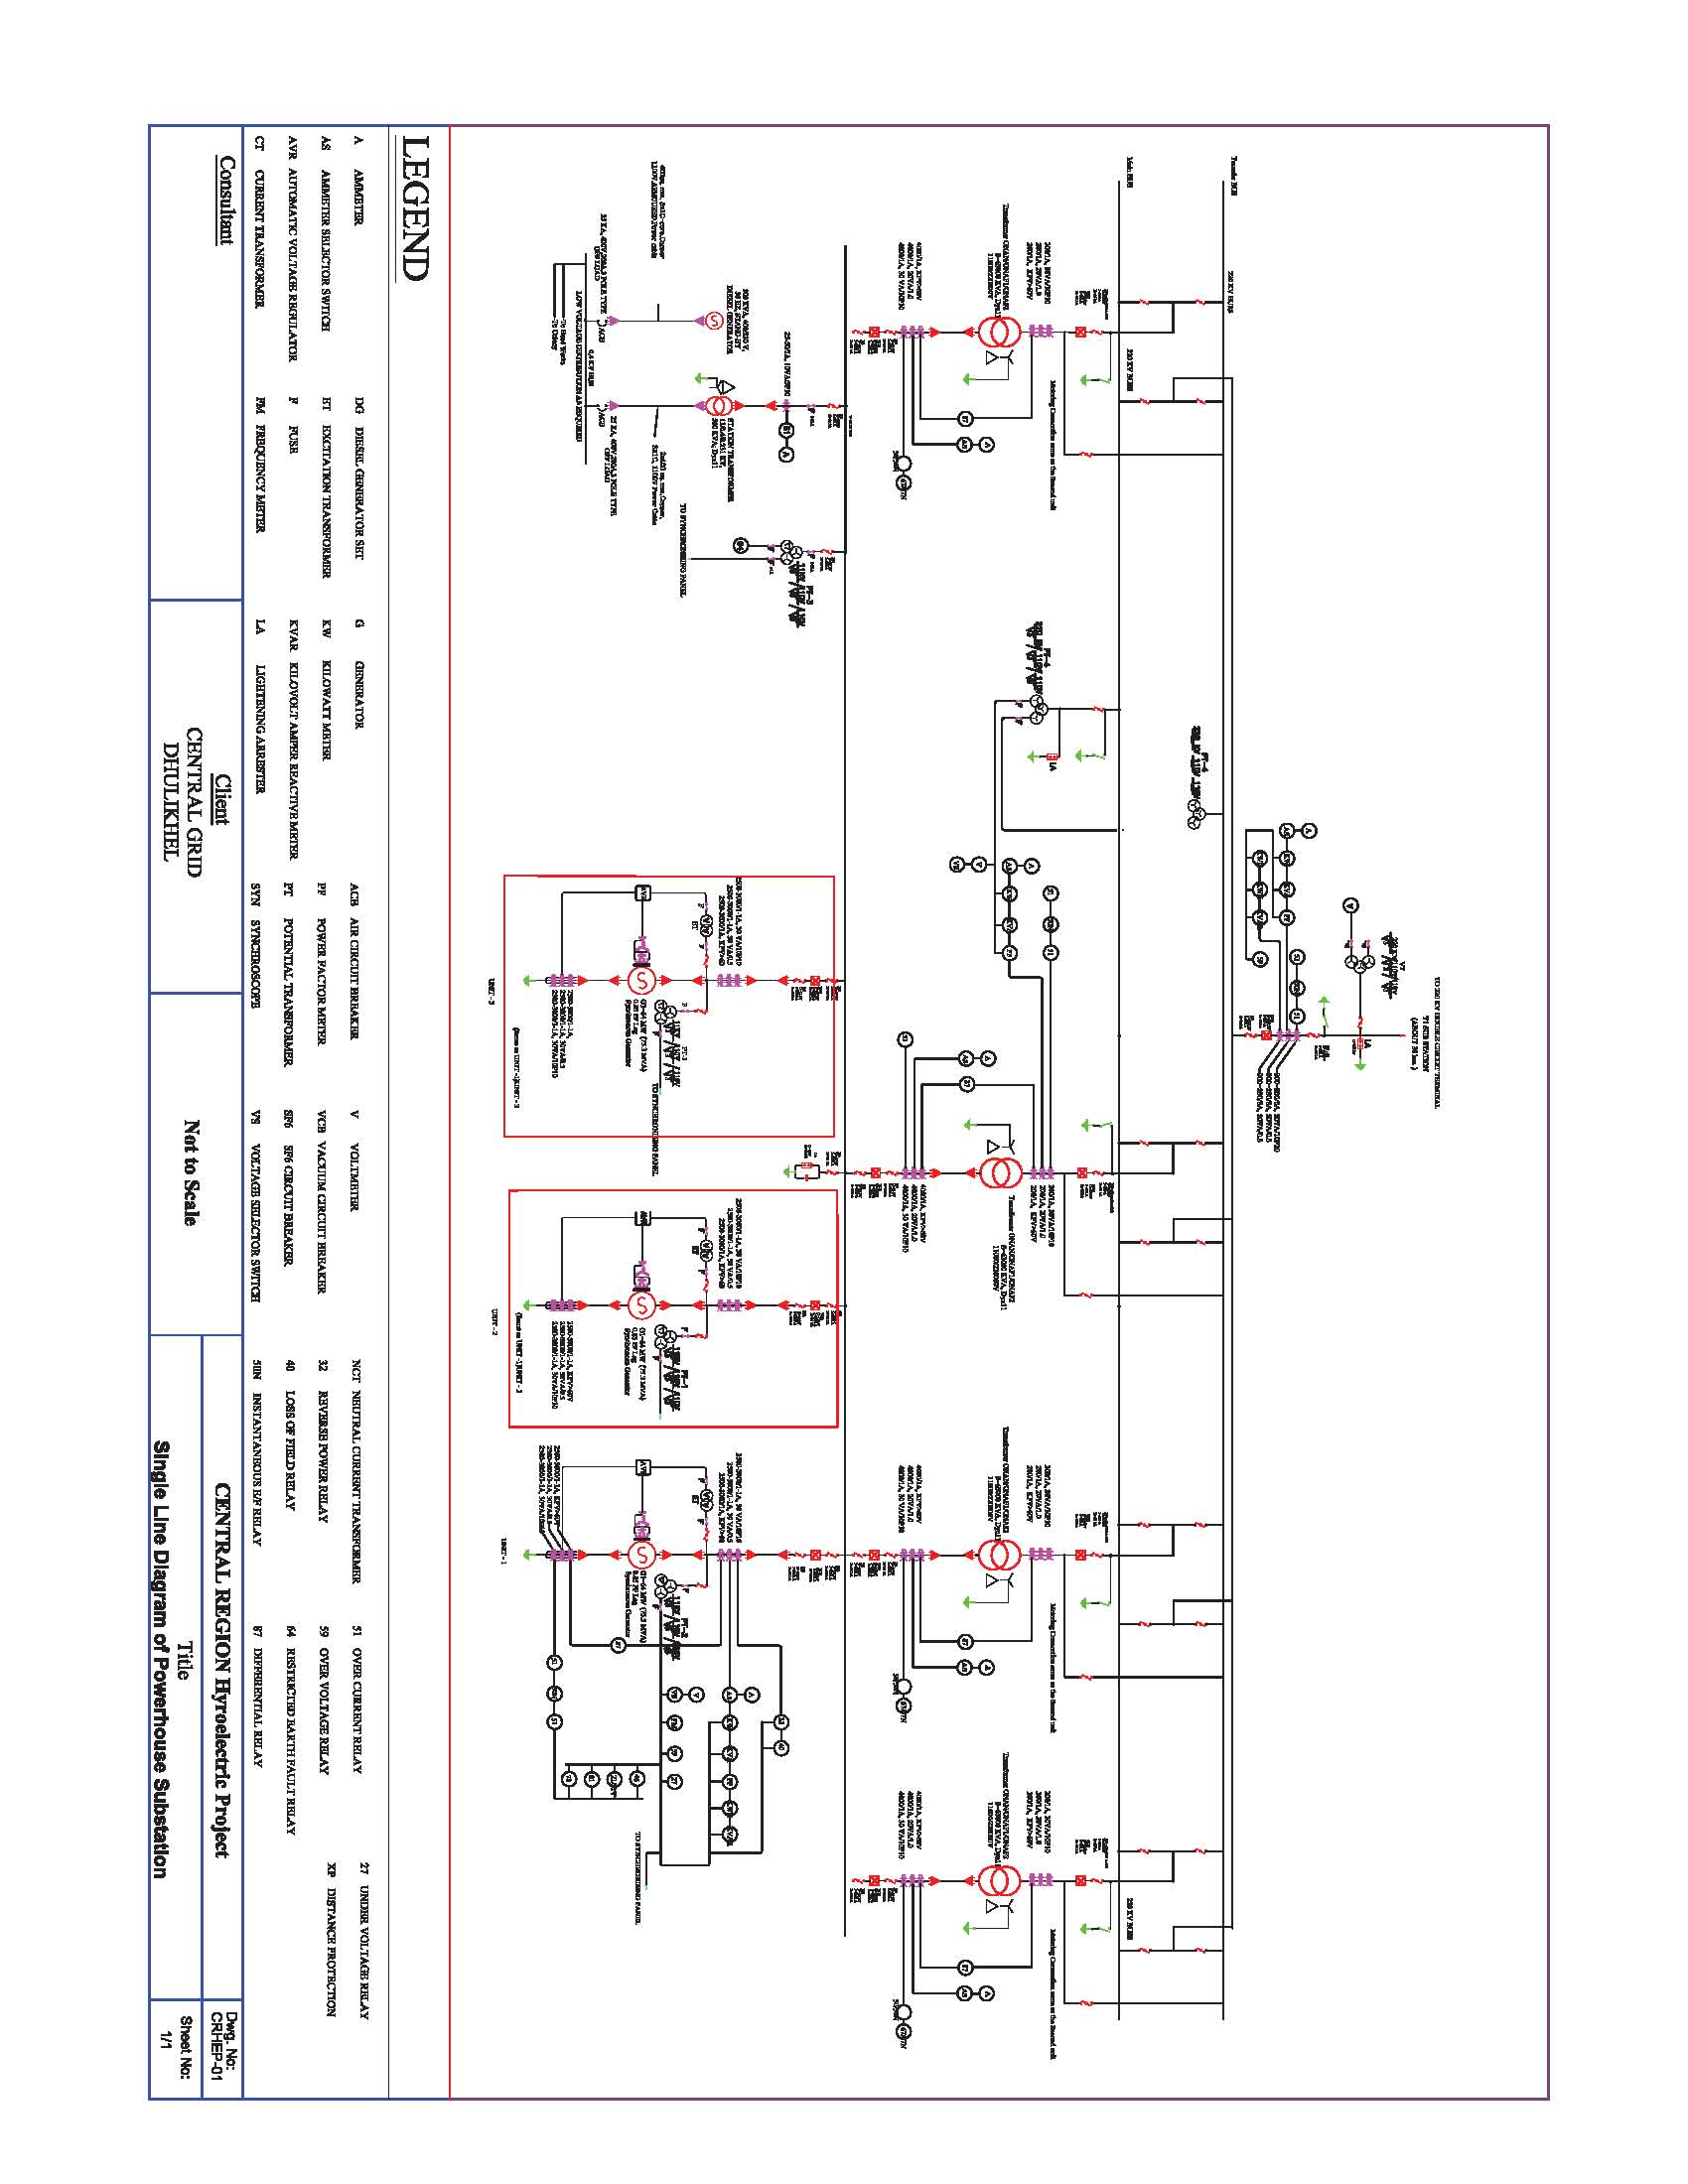 hight resolution of power plant one line diagram wiring diagram compilation thermal power plant single line diagram power evacuation